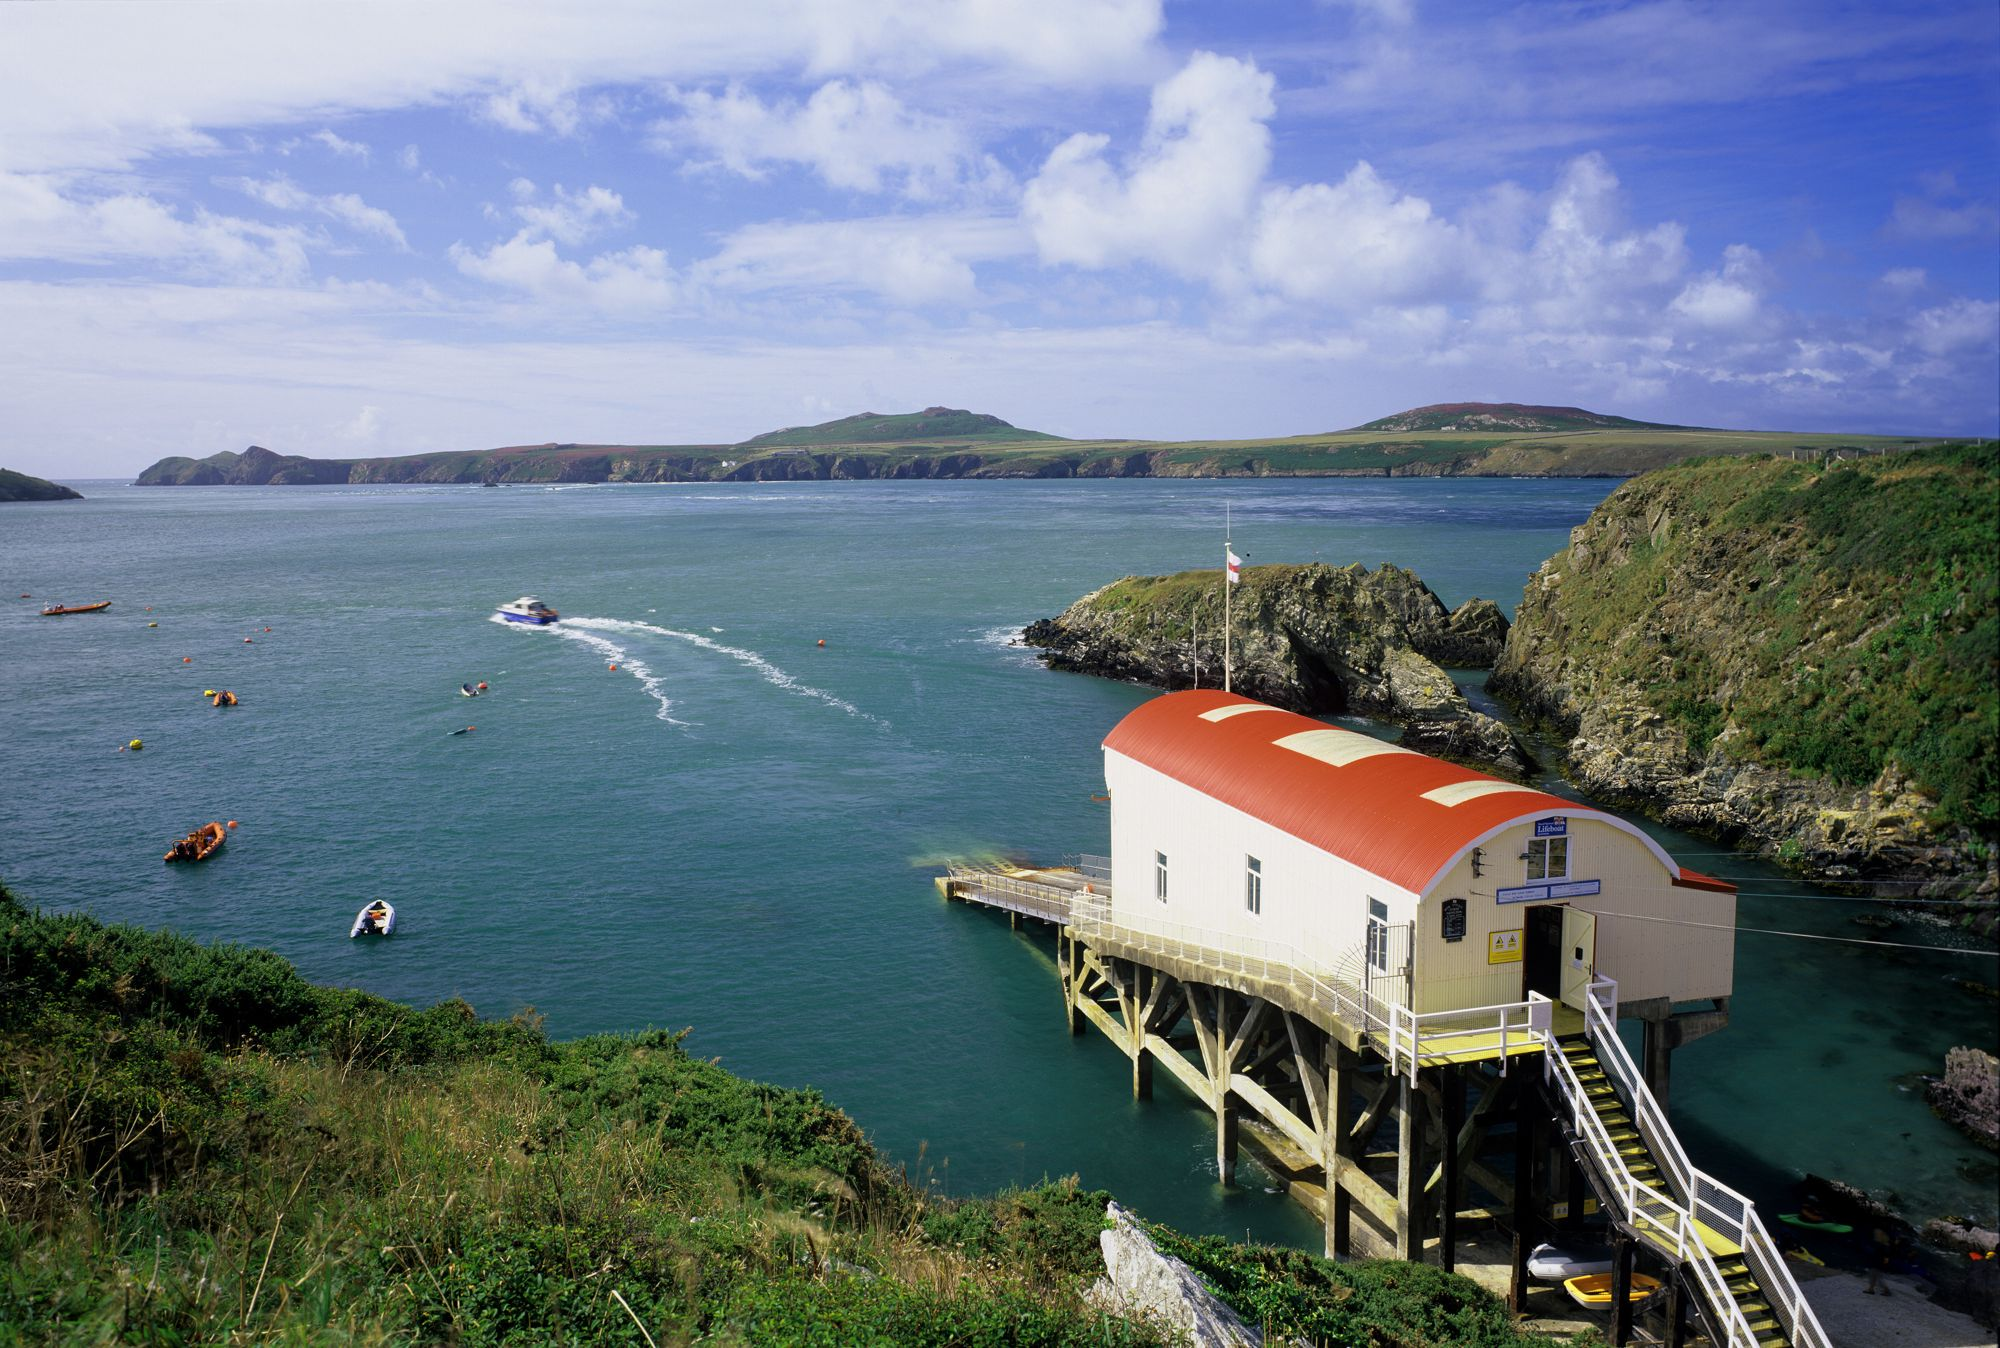 St Davids Camping | Best campsites in St Davids, Pembrokeshire